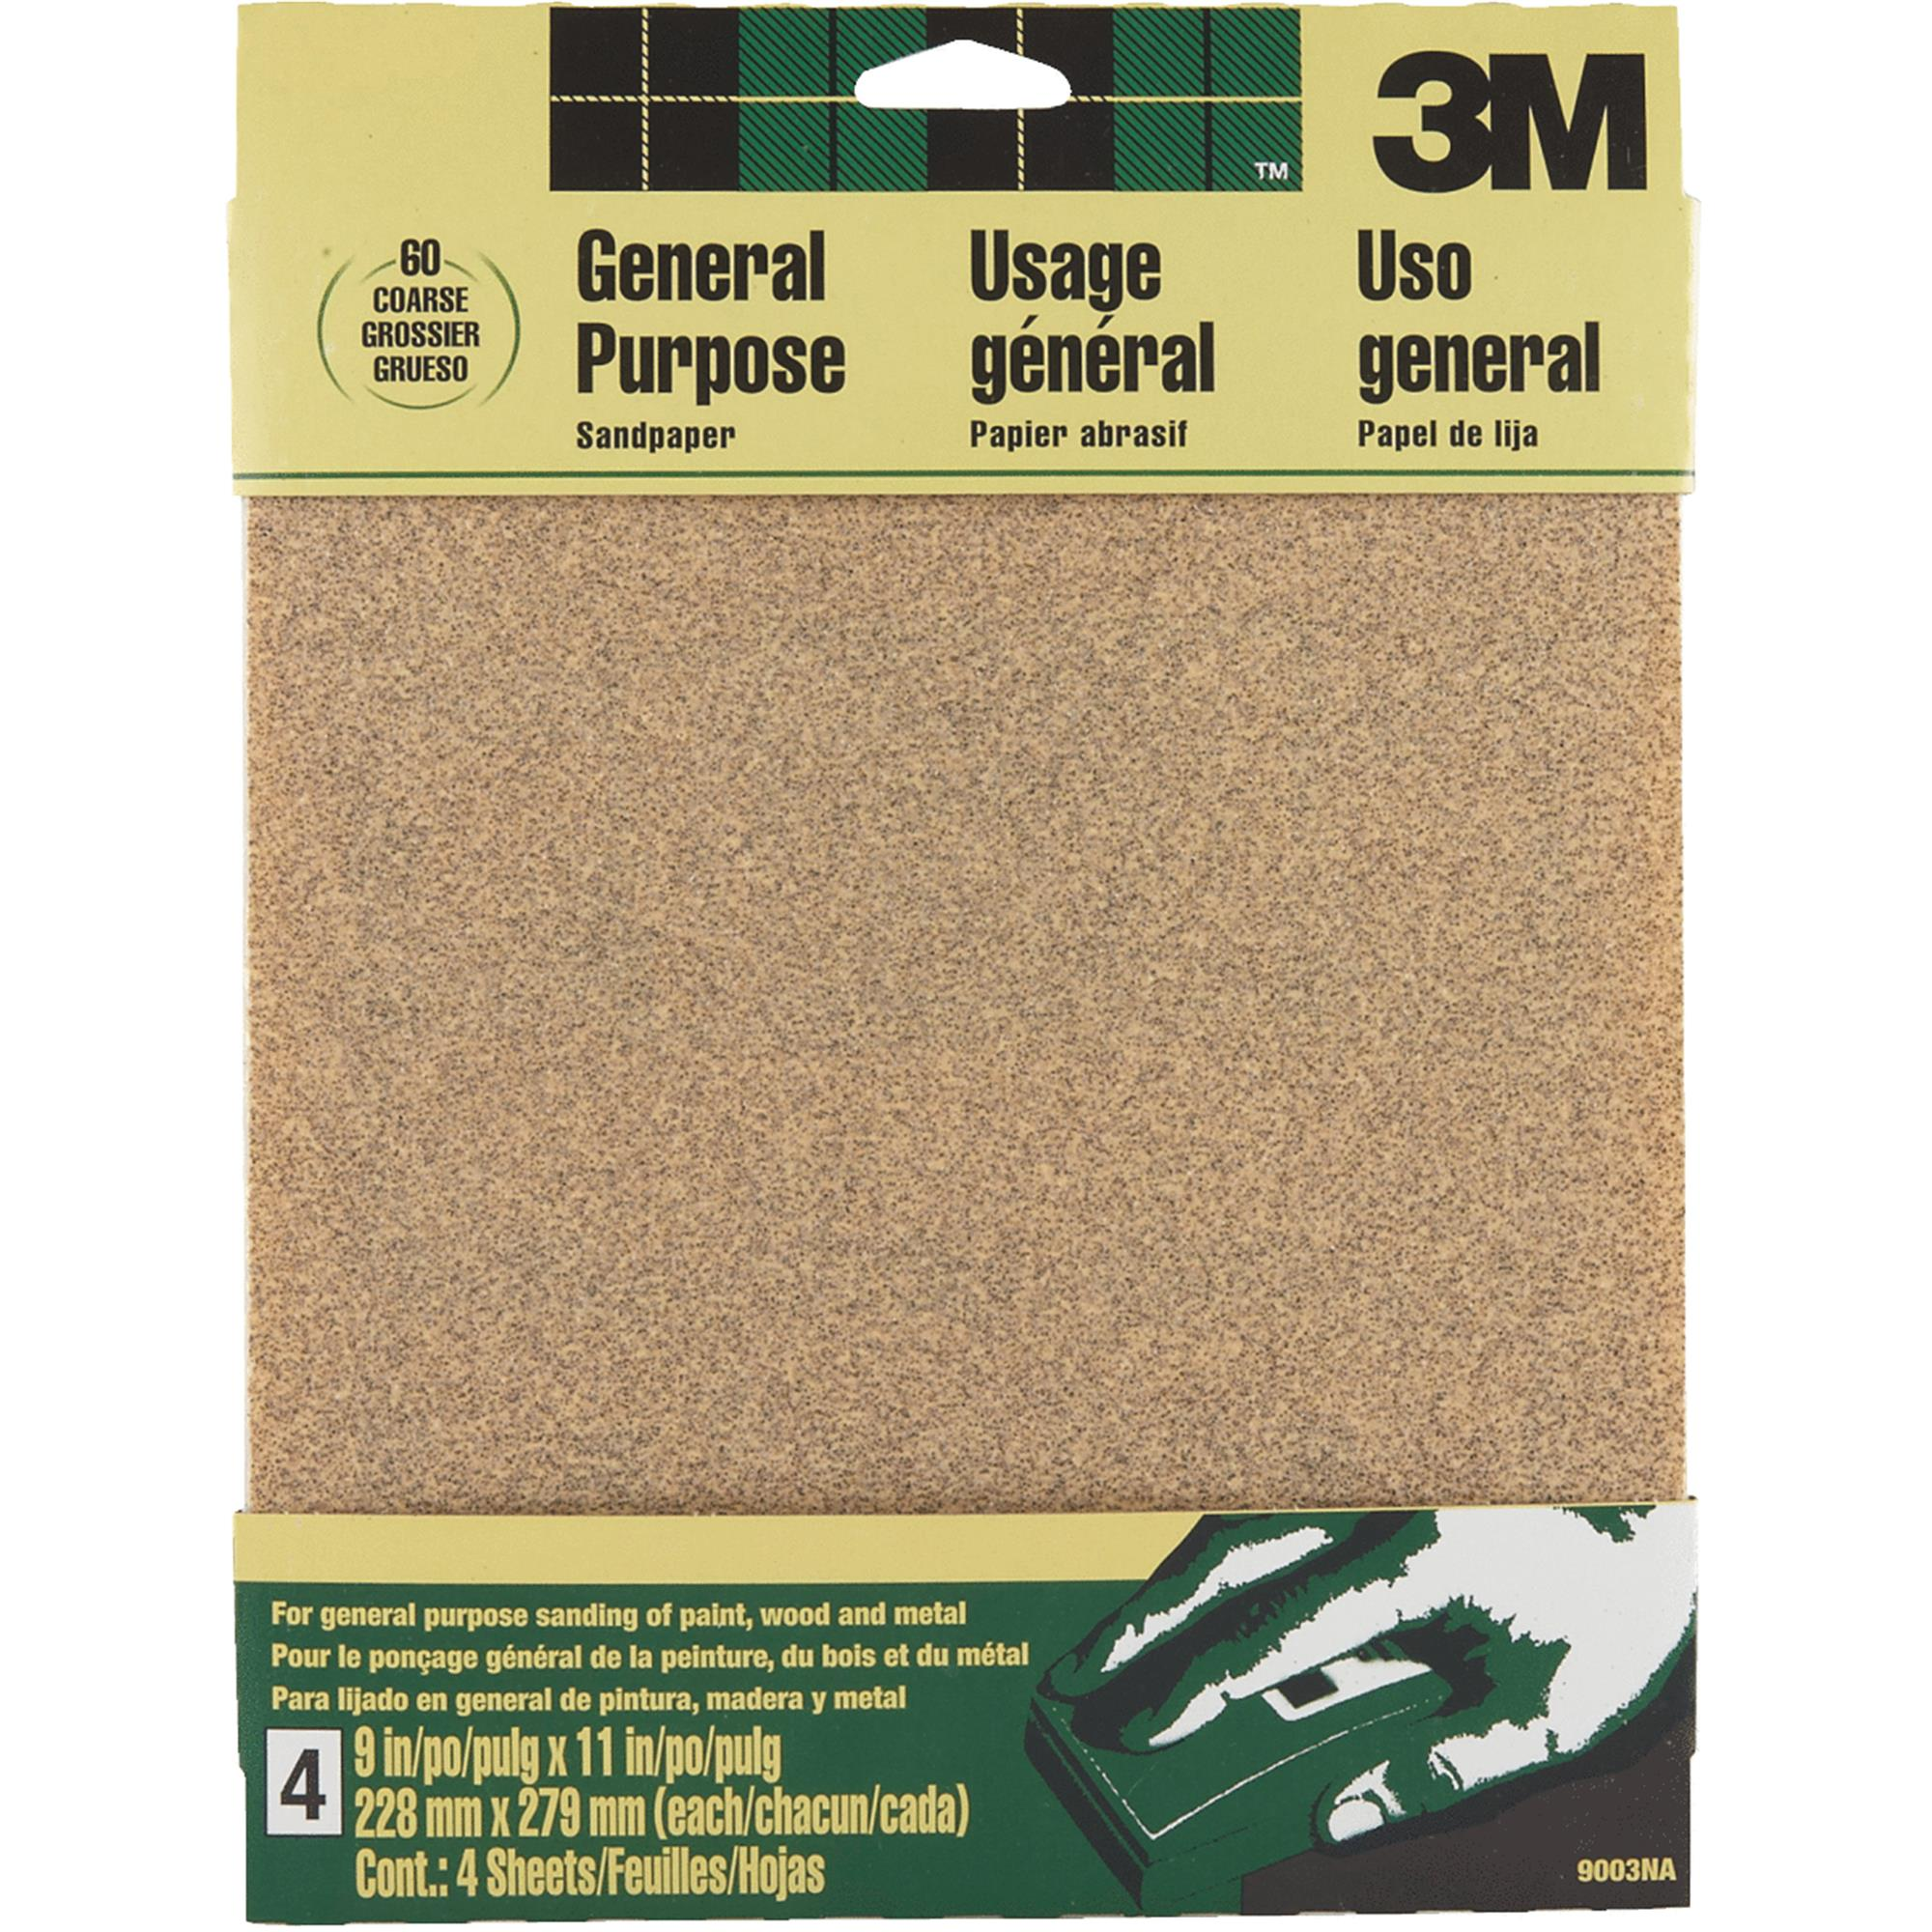 3M General Purpose Sandpaper